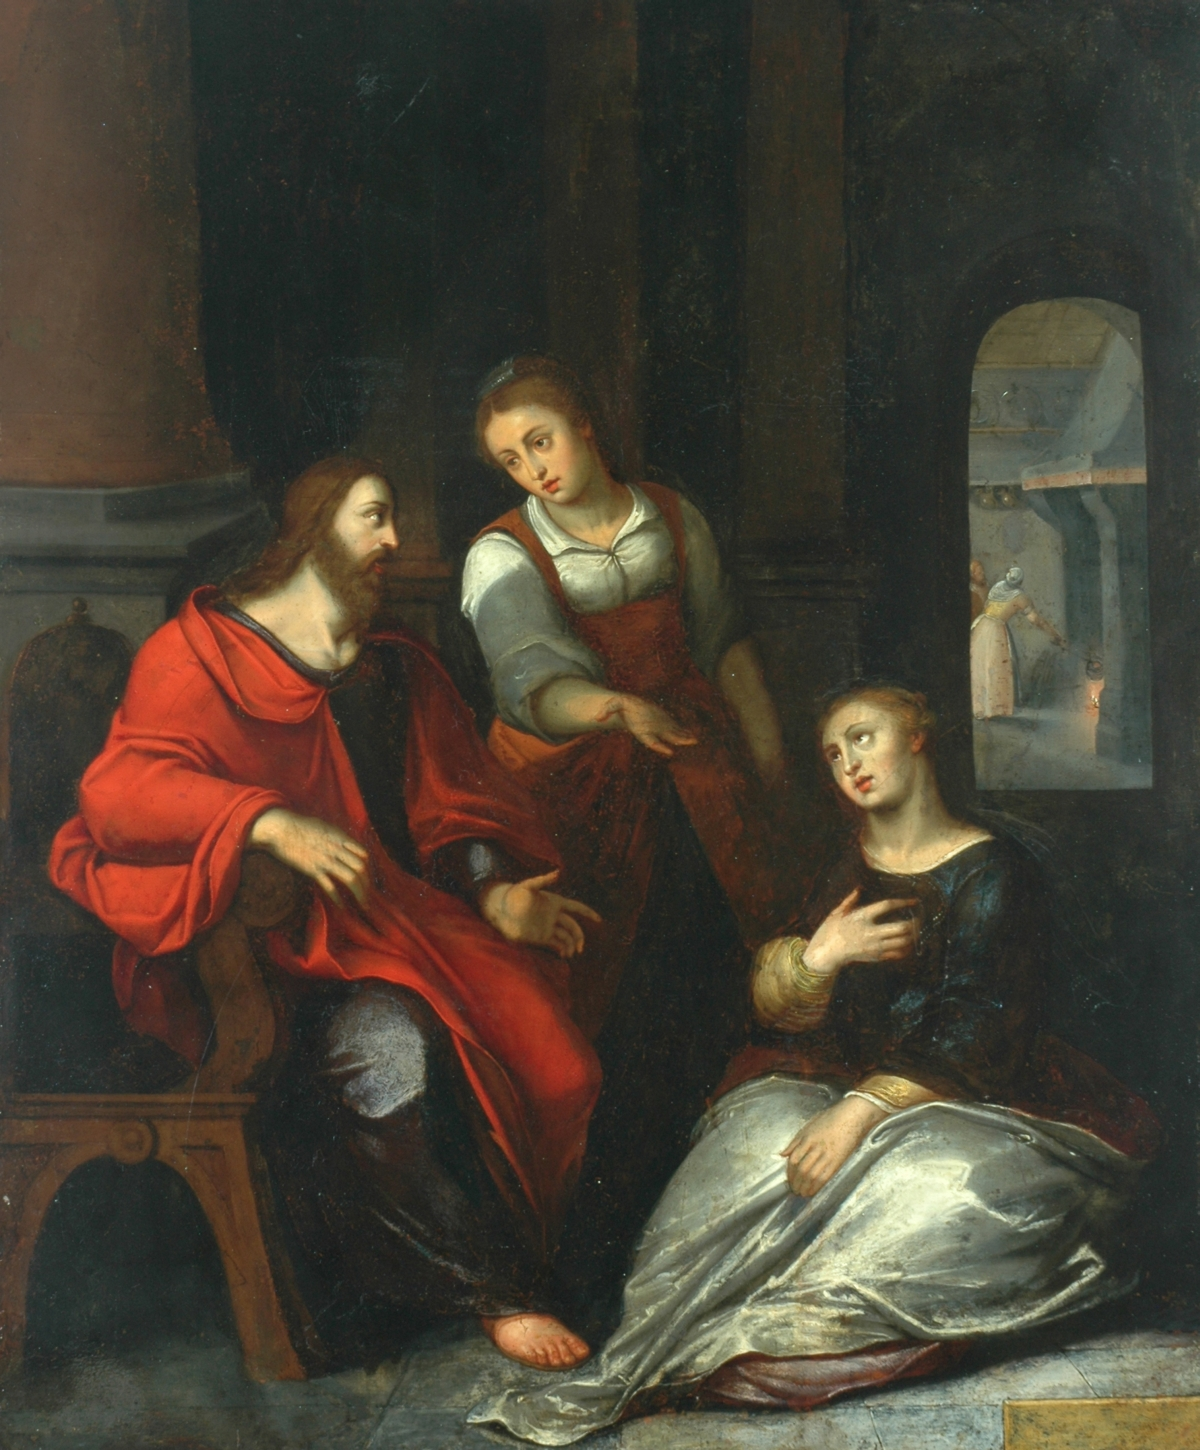 Painting by Otto van Veen - Martha protests with Jesus while Mary sits at his feet.